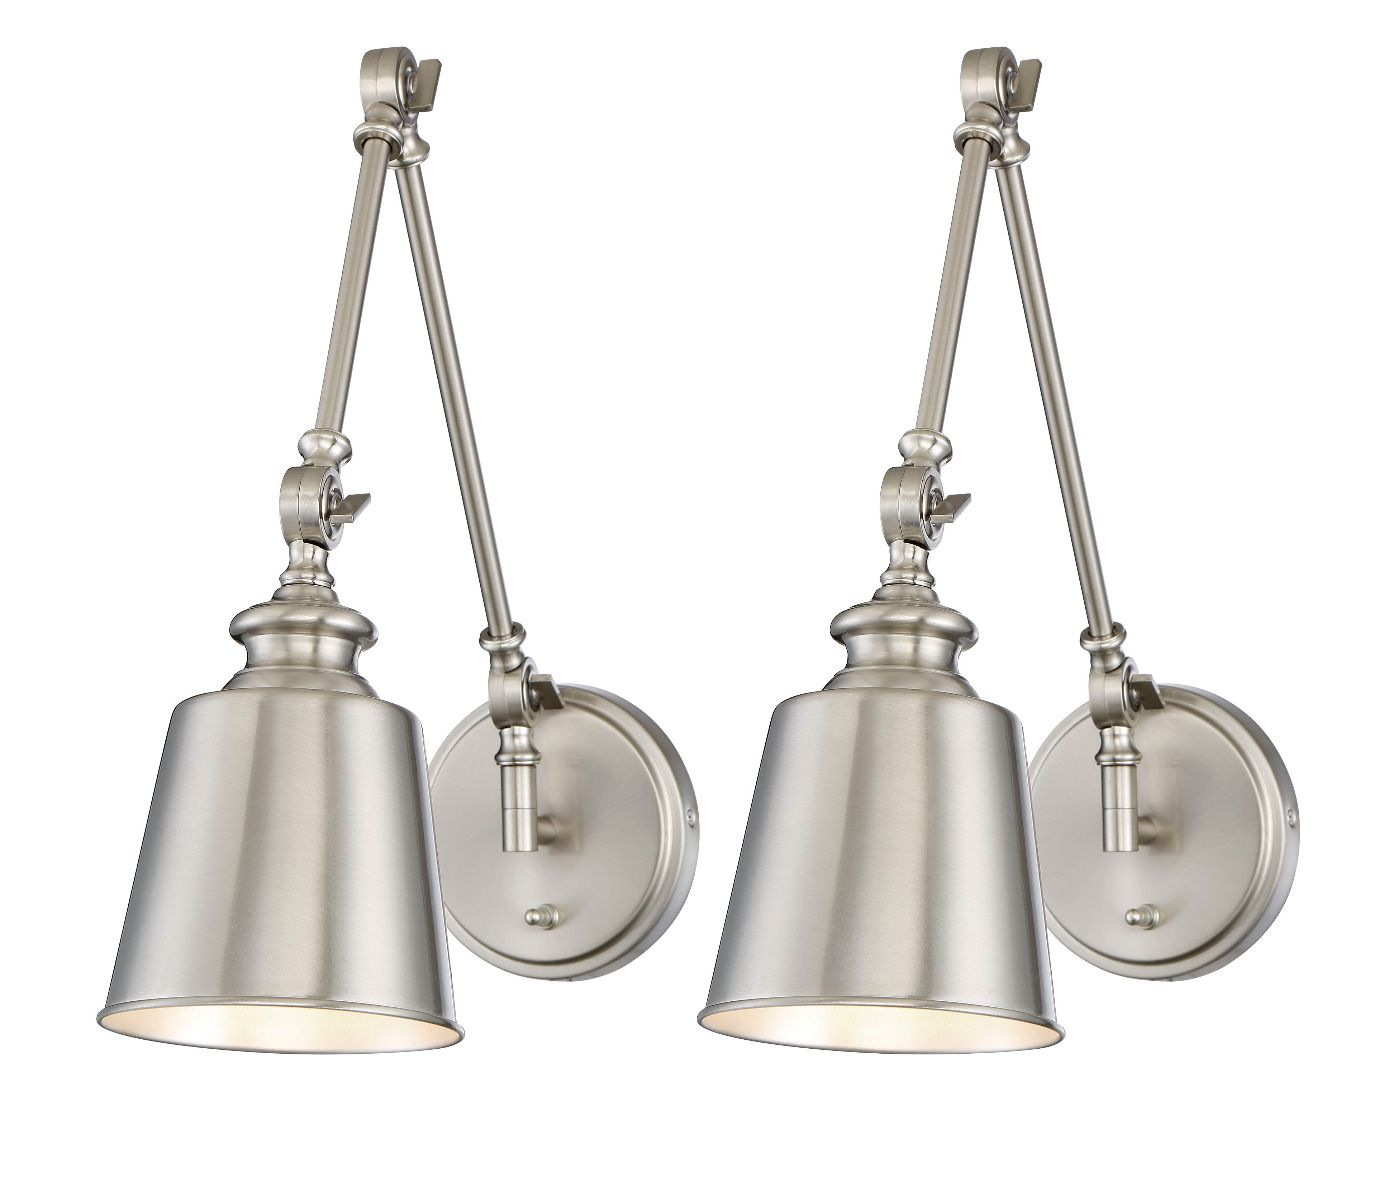 Swing Wall Lamp Trade Winds 1 Light Swing Arm Wall Lamp 2 Pack In Brushed Nickel